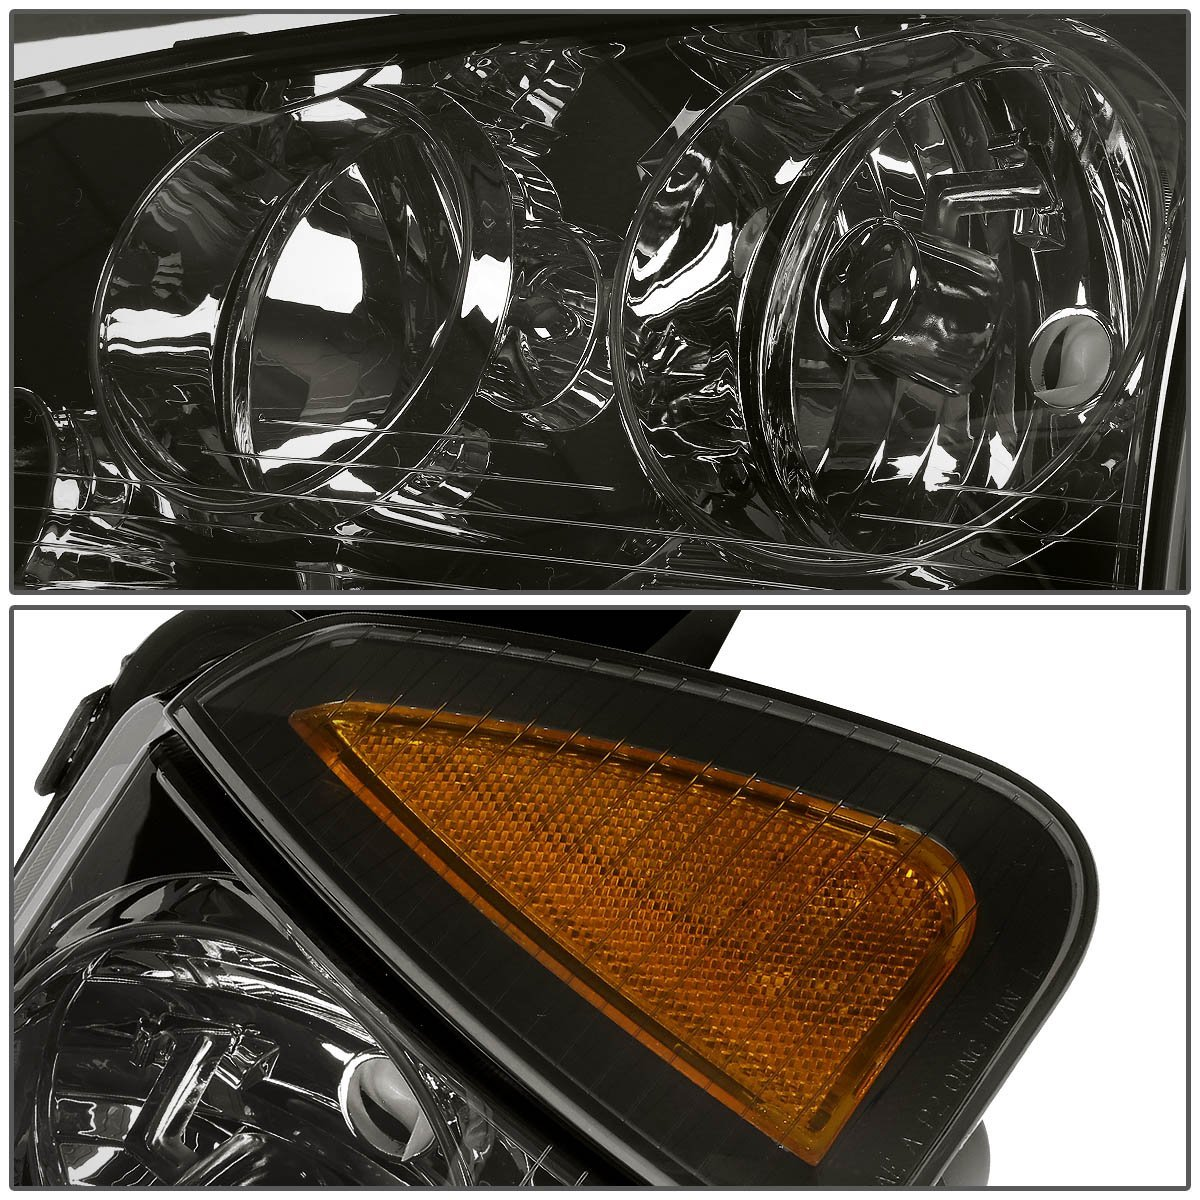 4Pcs Chrome Housing Headlight Amber Corner Turn Signal Light Lamps Replacement for Dodge Charger LX 06-10